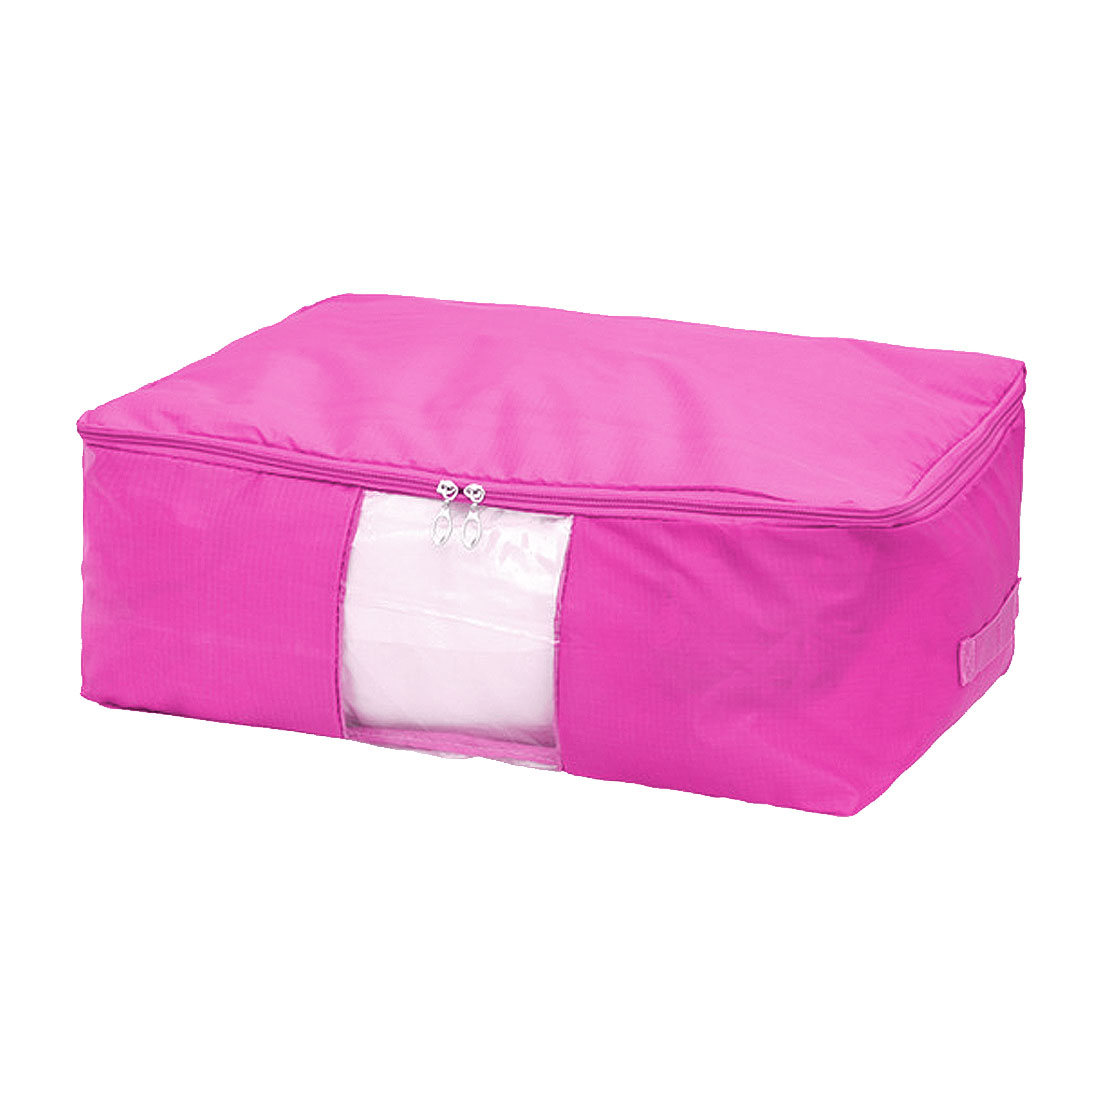 Blanket Pillows Quilts Clothes Beddings Storage Bag Organizer Fuchsia 60x50x28cm by Unique-Bargains